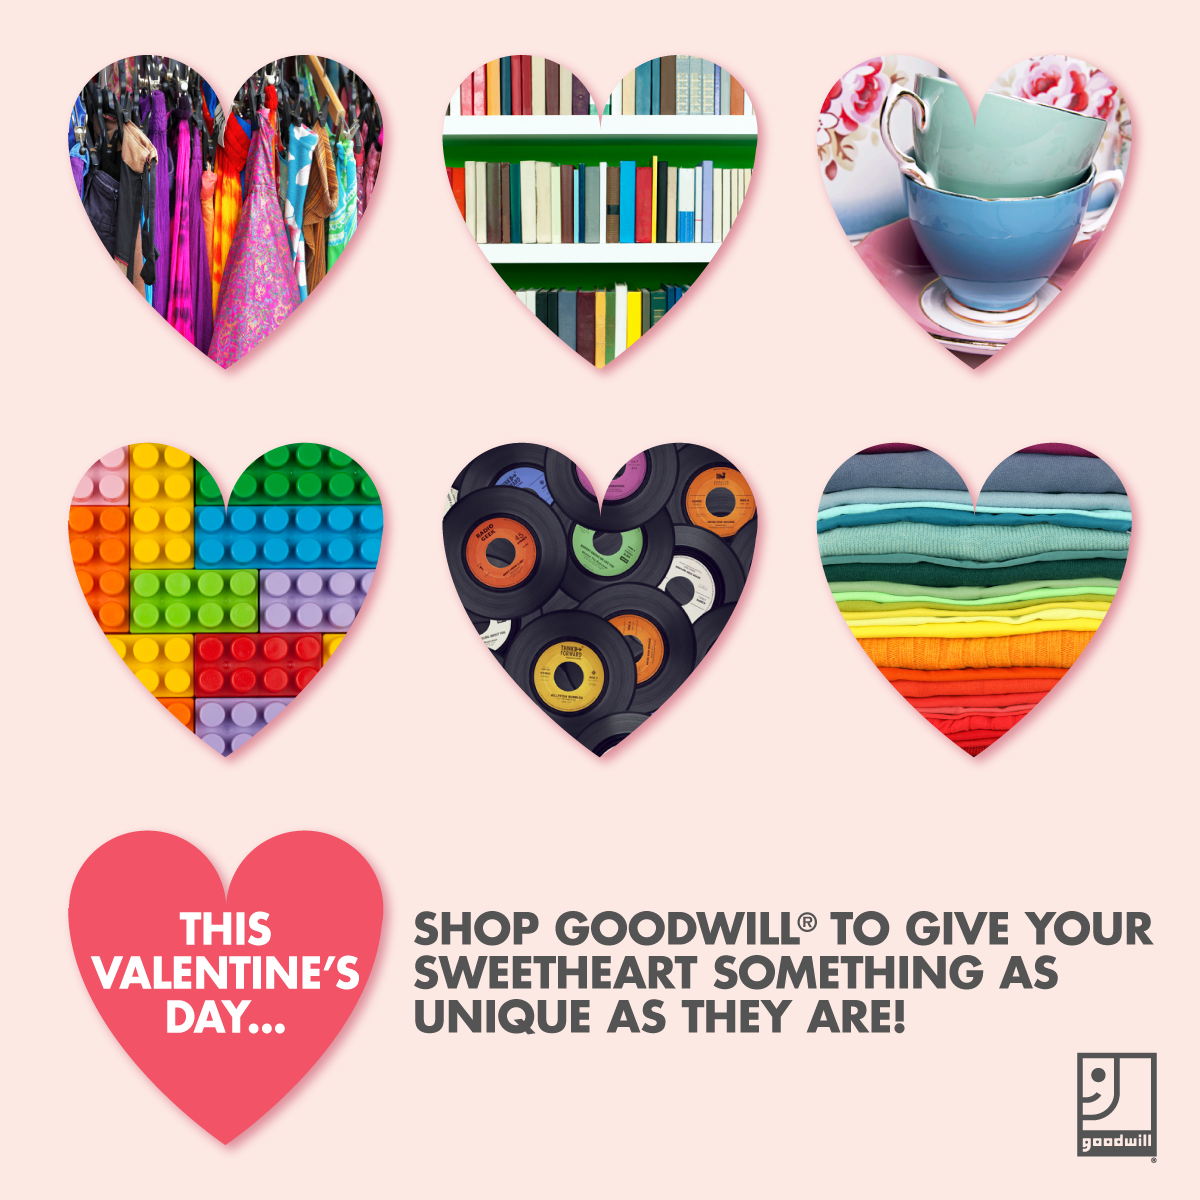 o to Goodwill to find something special that your Valentine will truly love!    Click this image to find a Goodwill near you!